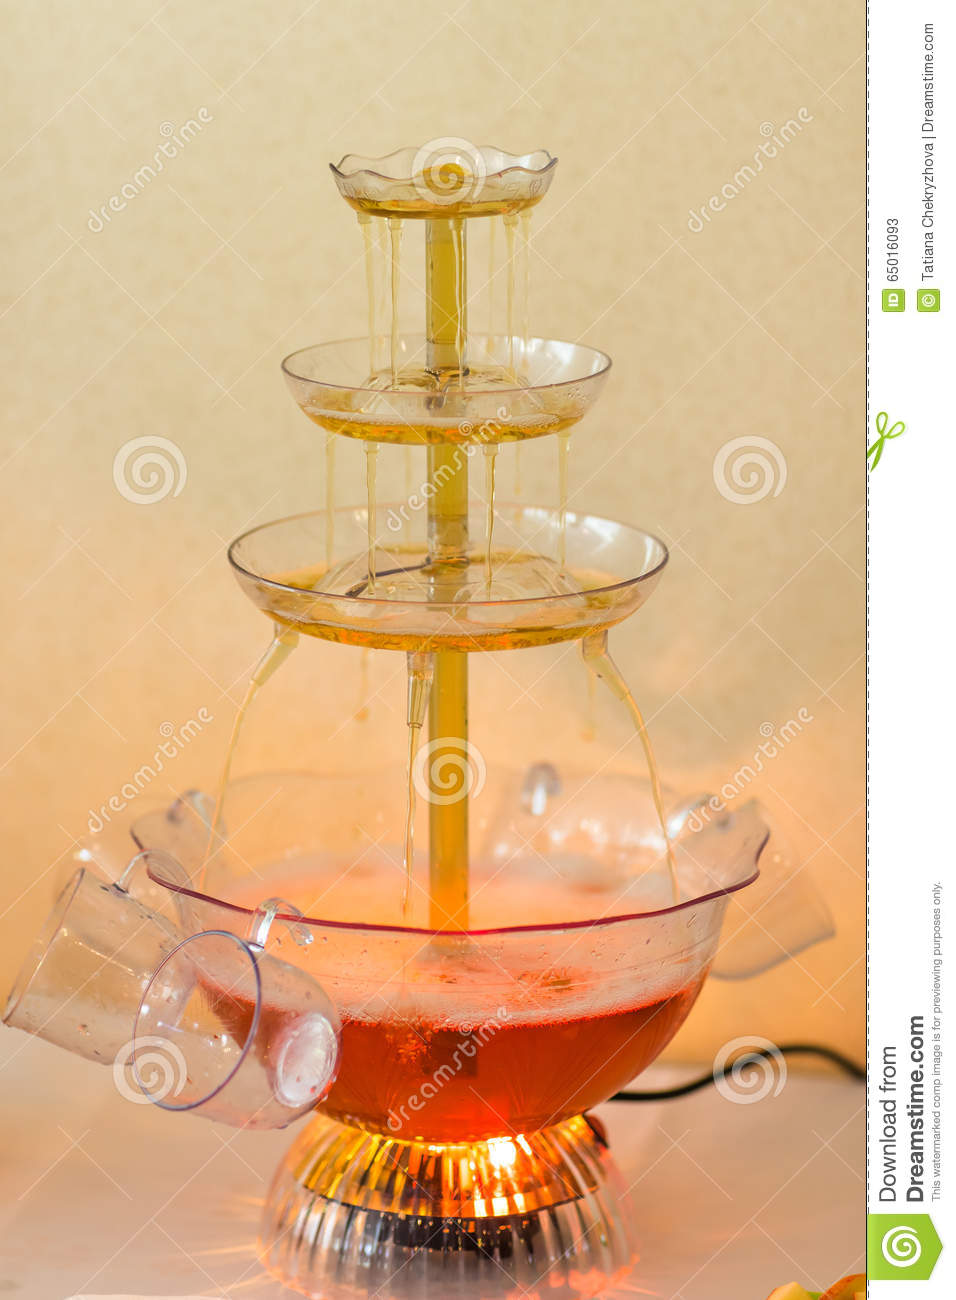 Autumn Wedding Punch Bowl Stock Image Image Of Gourmet 65016093